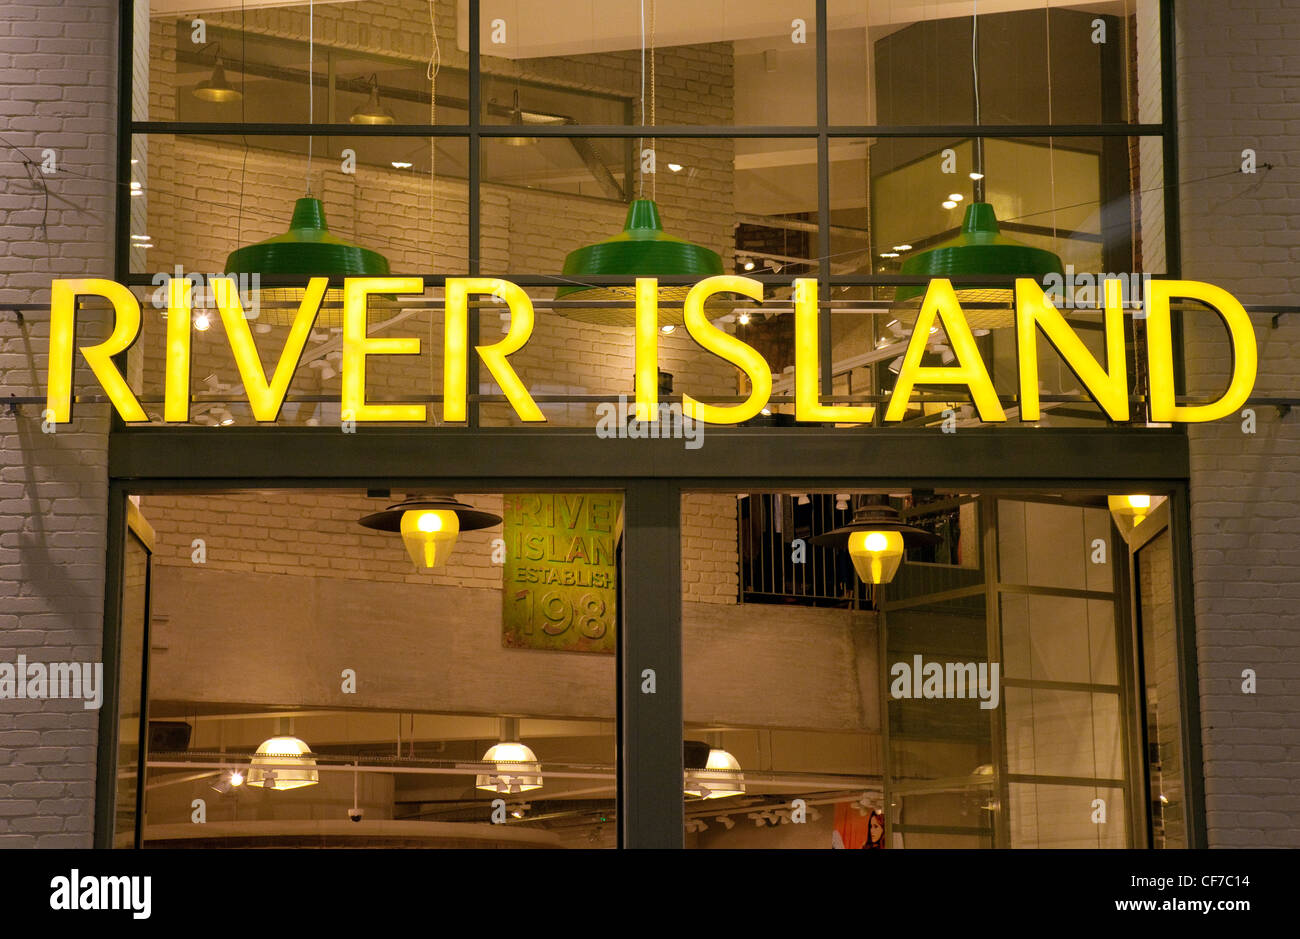 River Island store sign UK Stock Photo